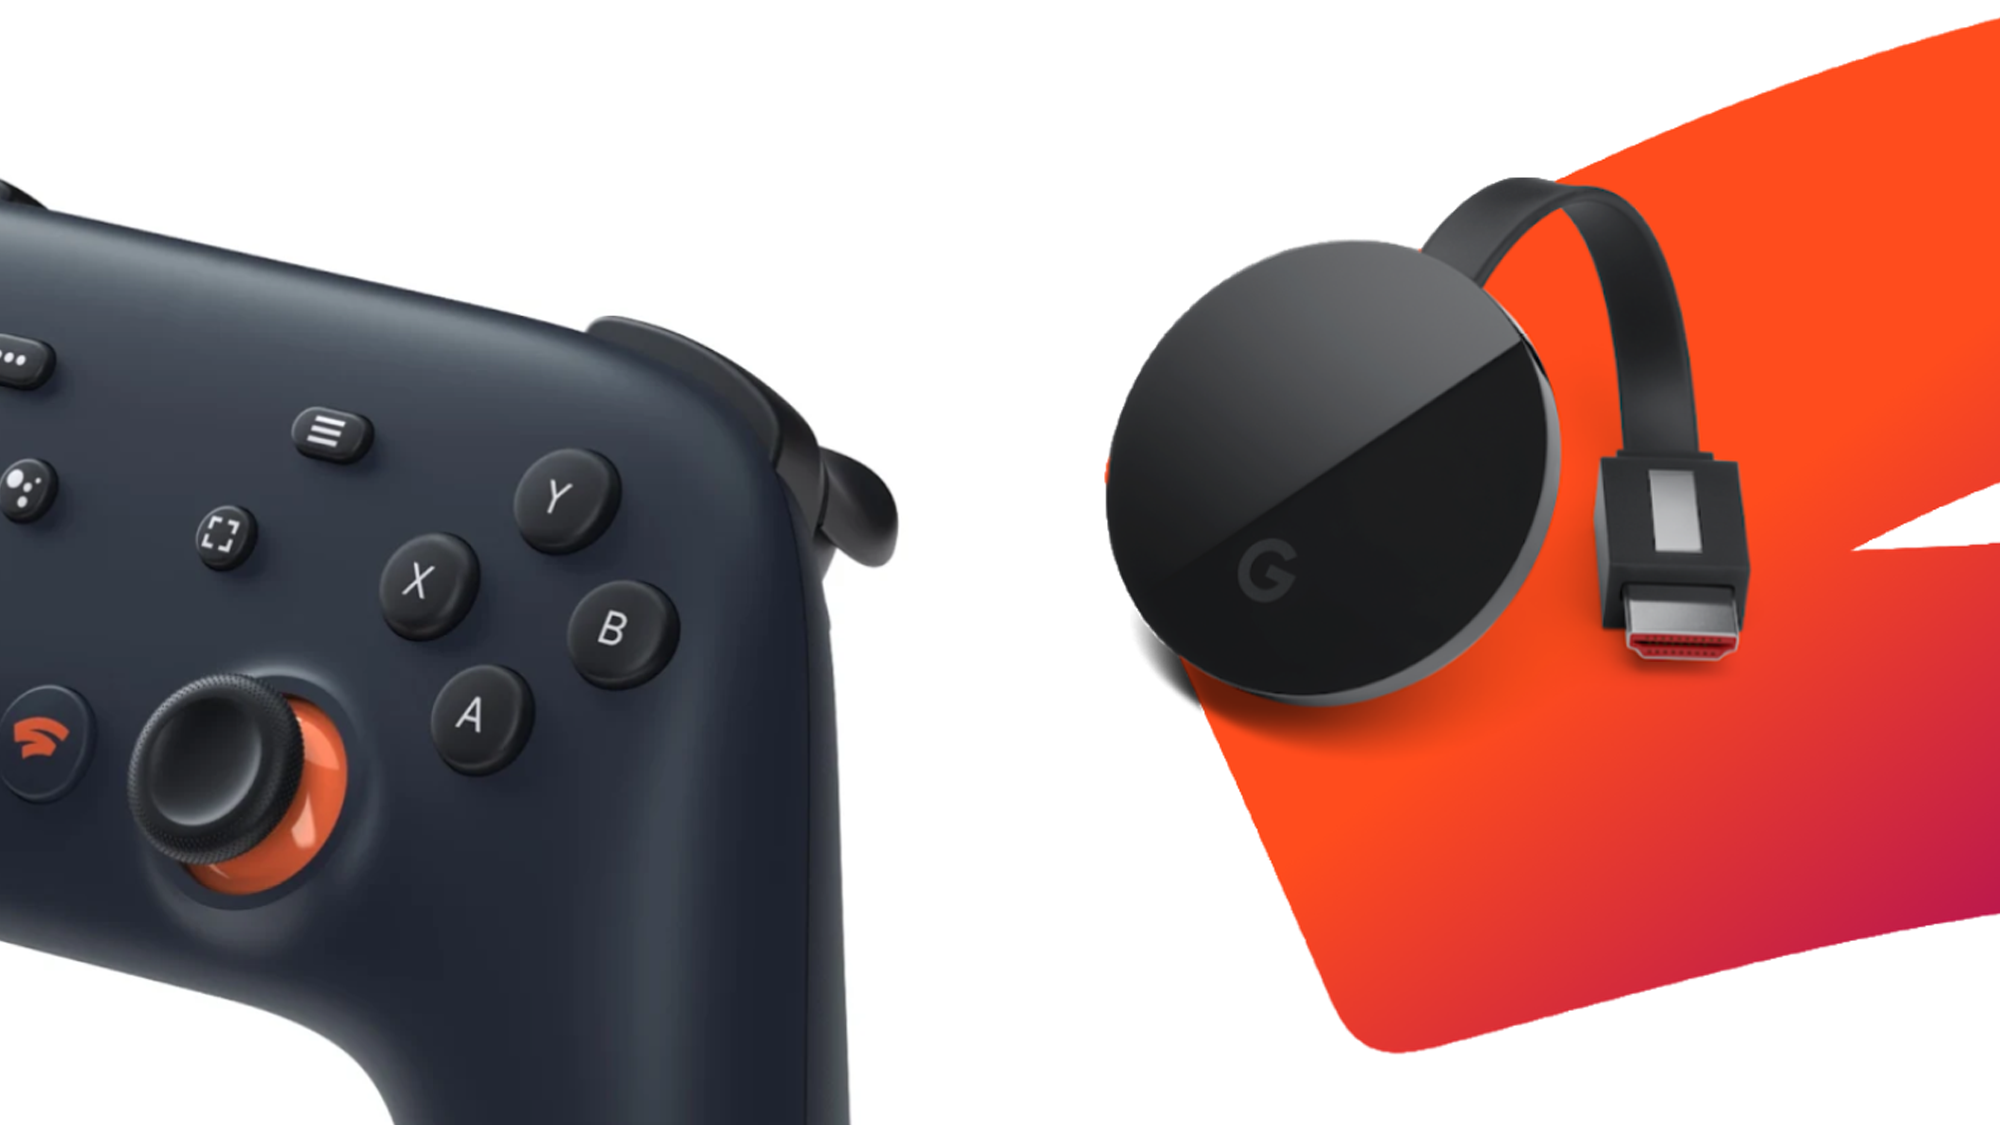 """The """"Founder's Edition"""" includes the Stadia Wi-Fi controller and a Chromecast Ultra for $130."""